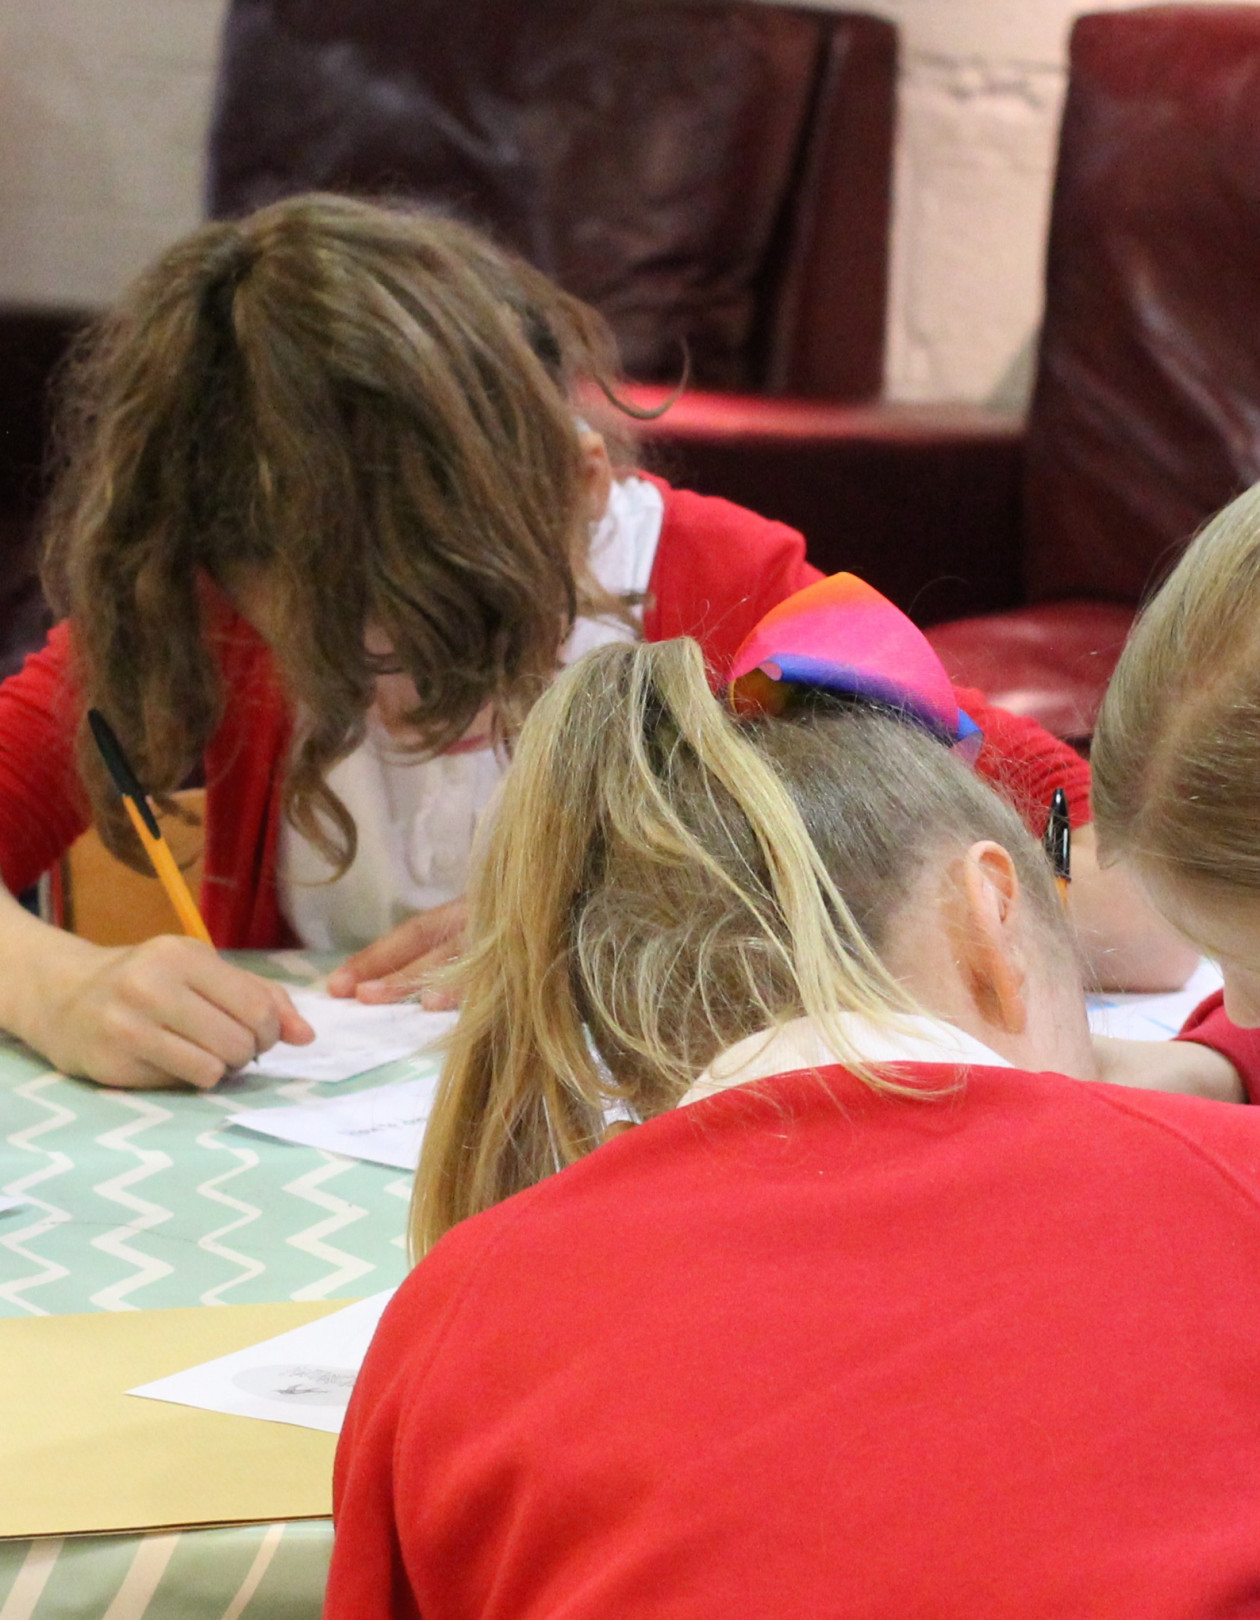 Question: Could arts-based pedagogy improve curriculum engagement for looked after children?